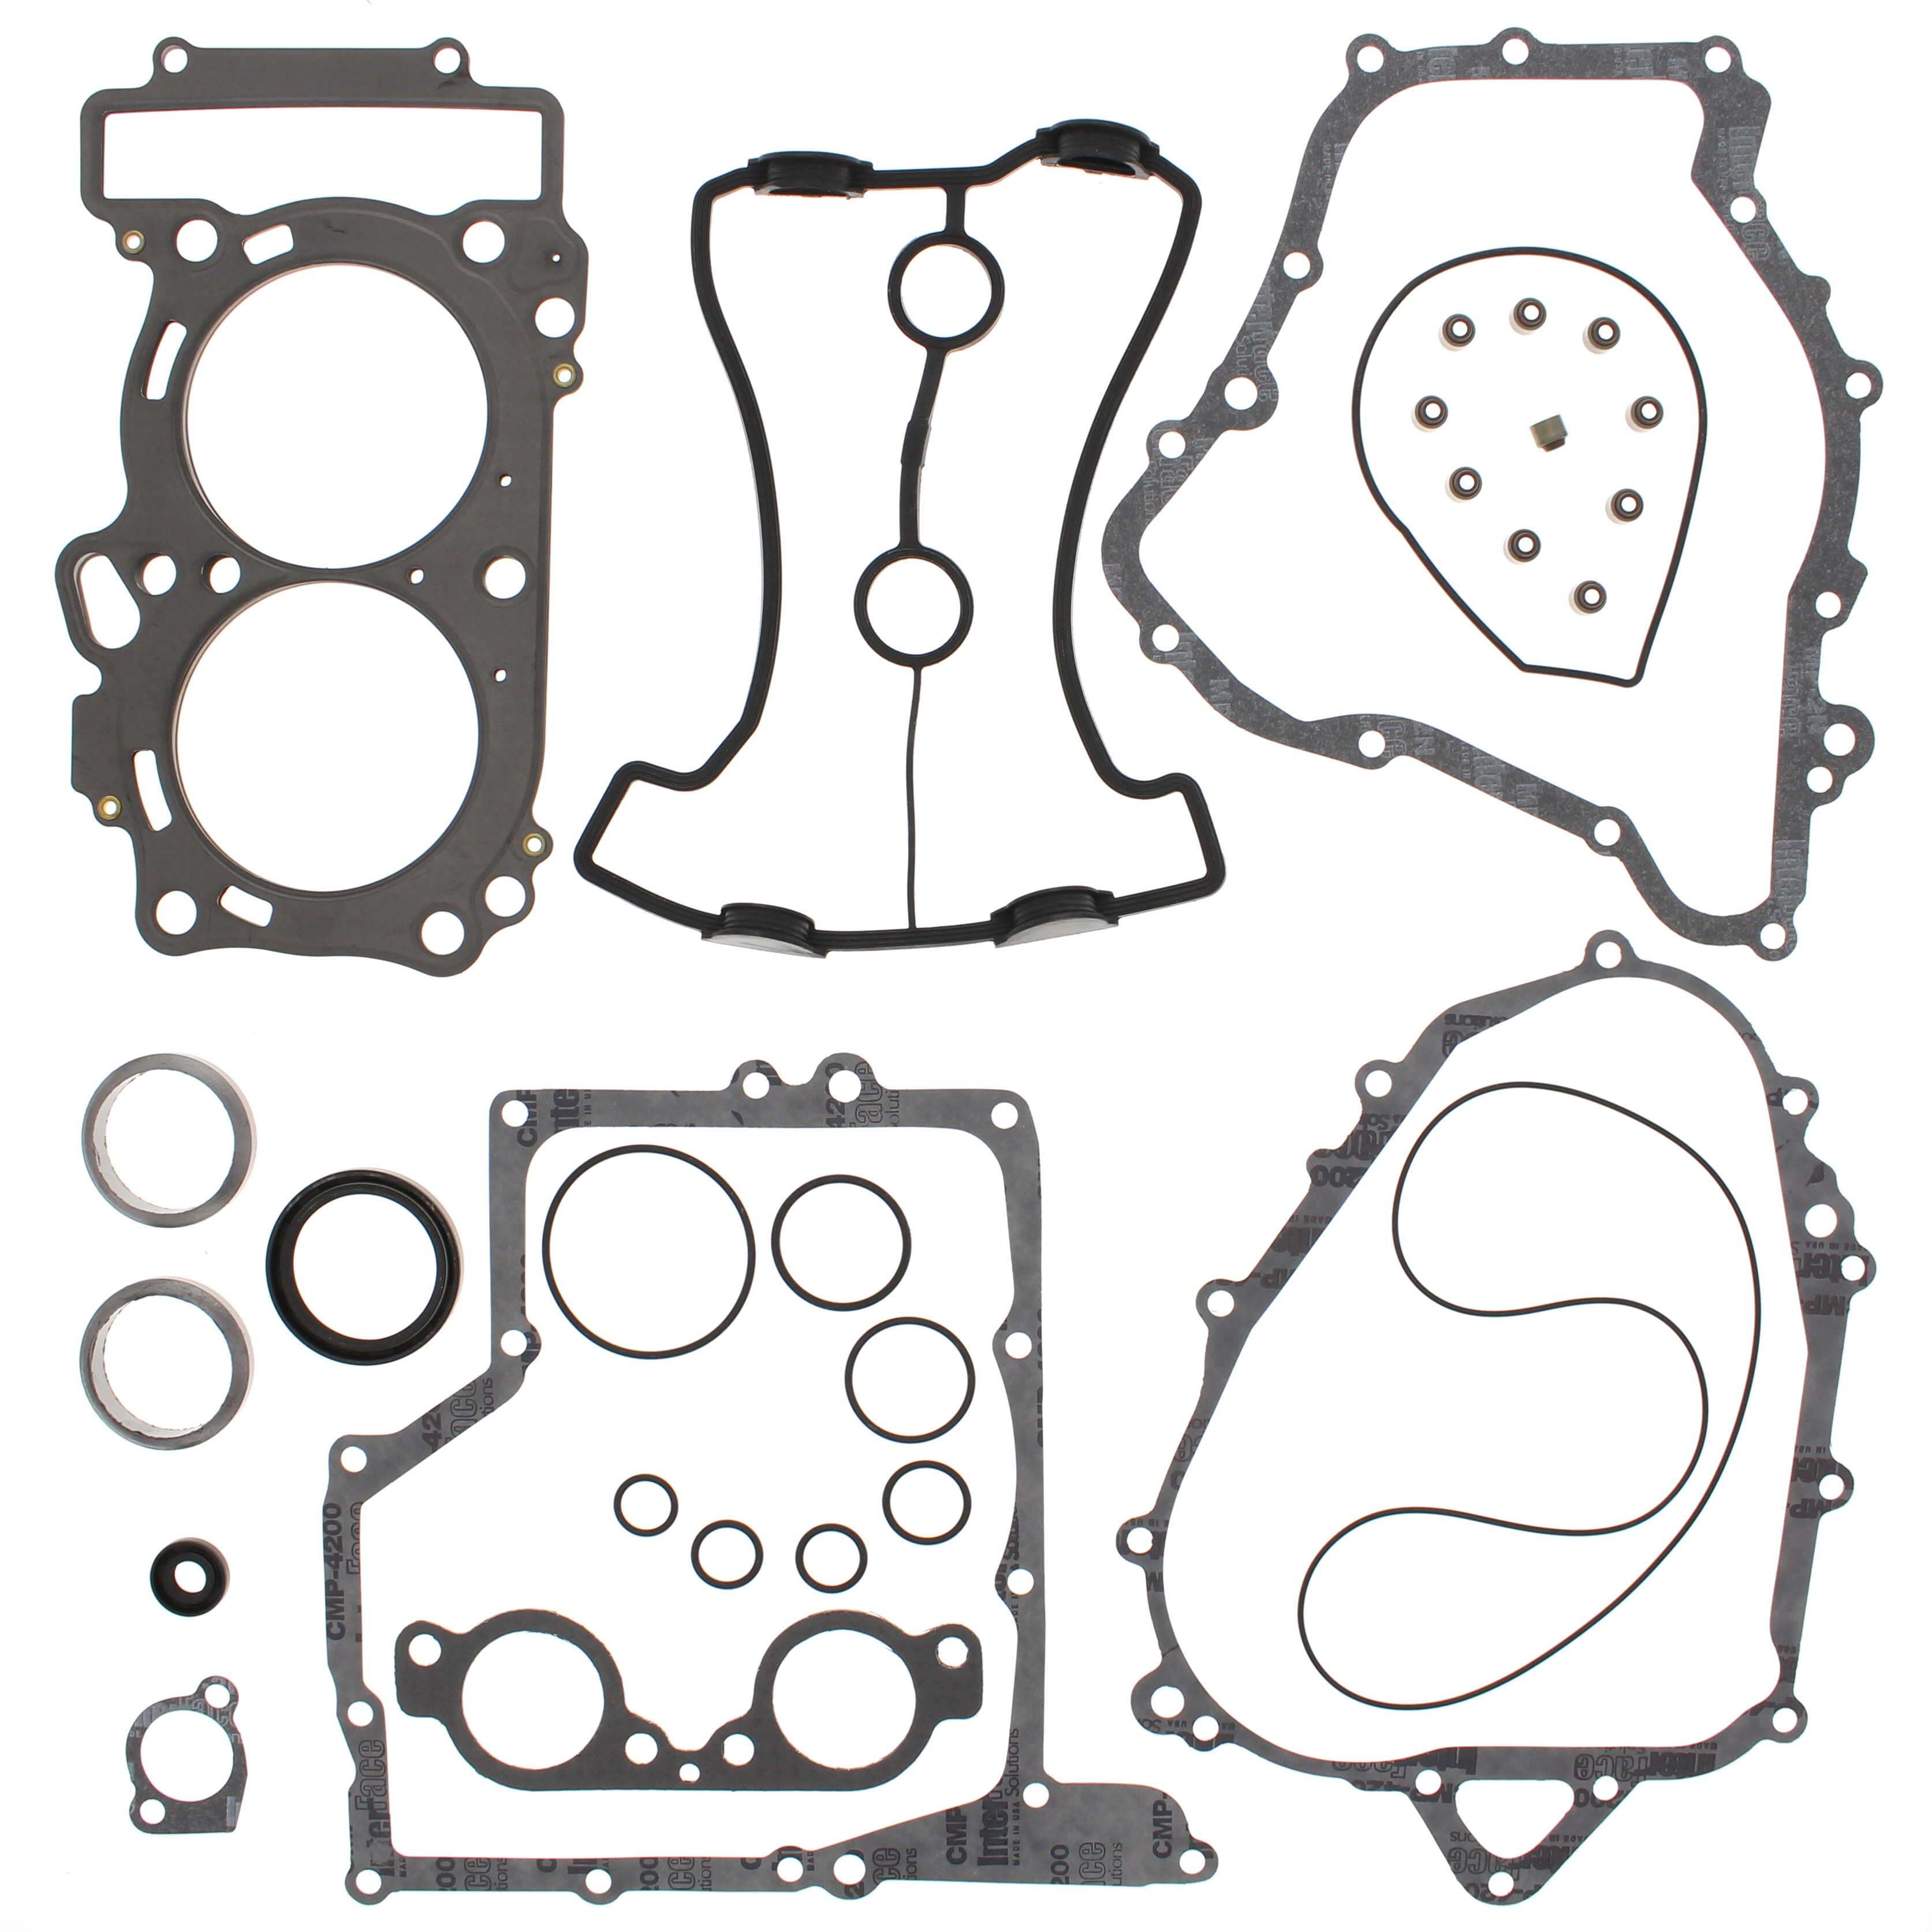 New Complete Gasket Kit w/ Oil Seals Yamaha PHAZER MTX 50...